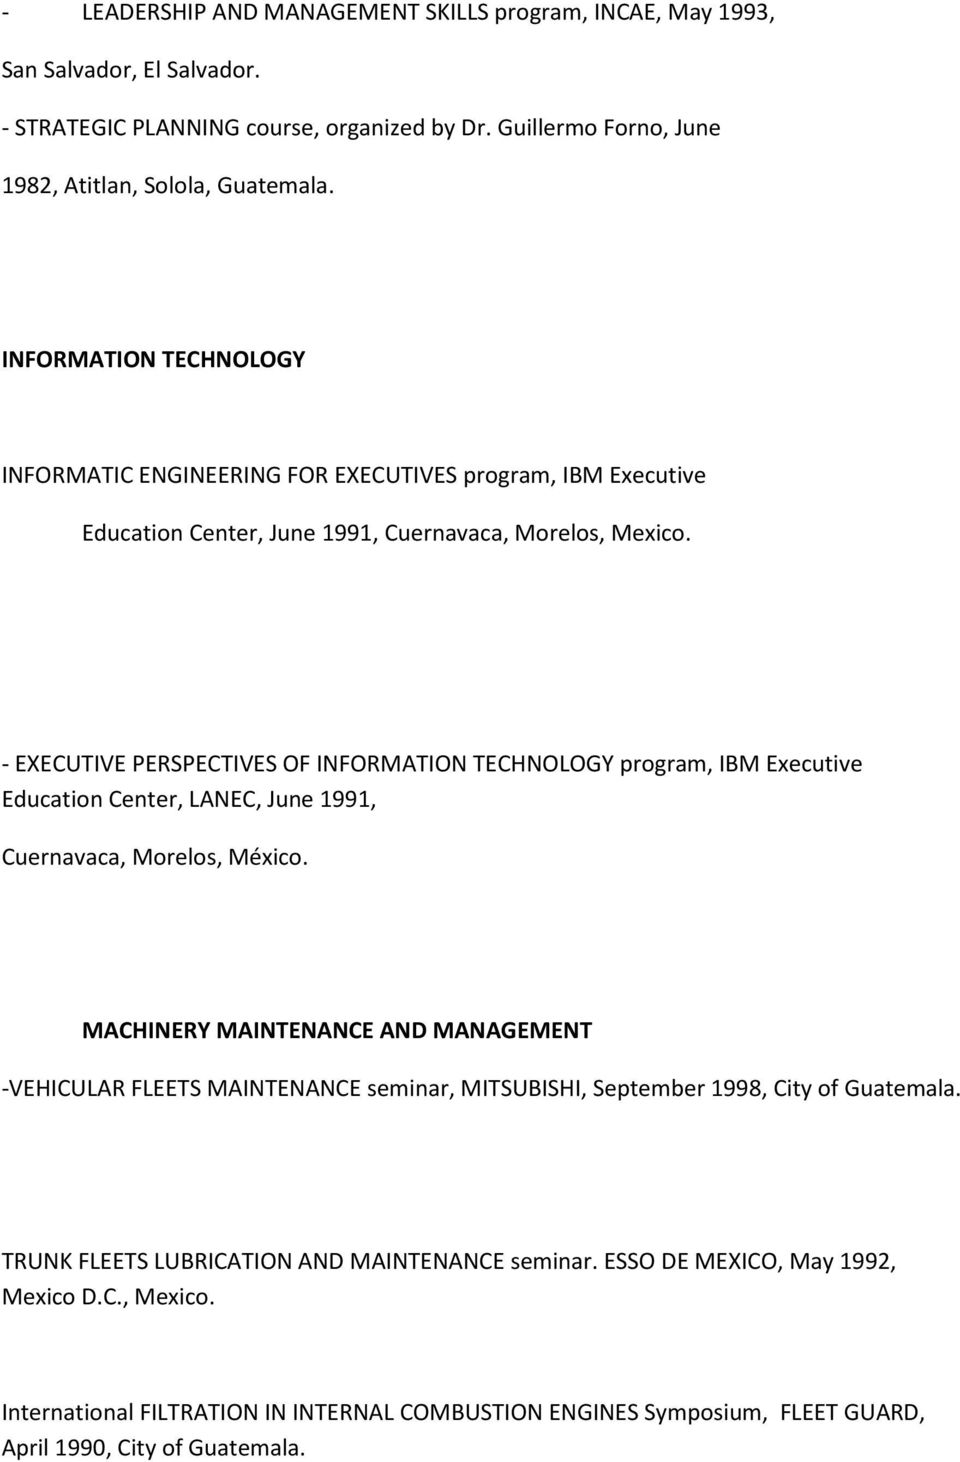 - EXECUTIVE PERSPECTIVES OF INFORMATION TECHNOLOGY program, IBM Executive Education Center, LANEC, June 1991, Cuernavaca, Morelos, México.